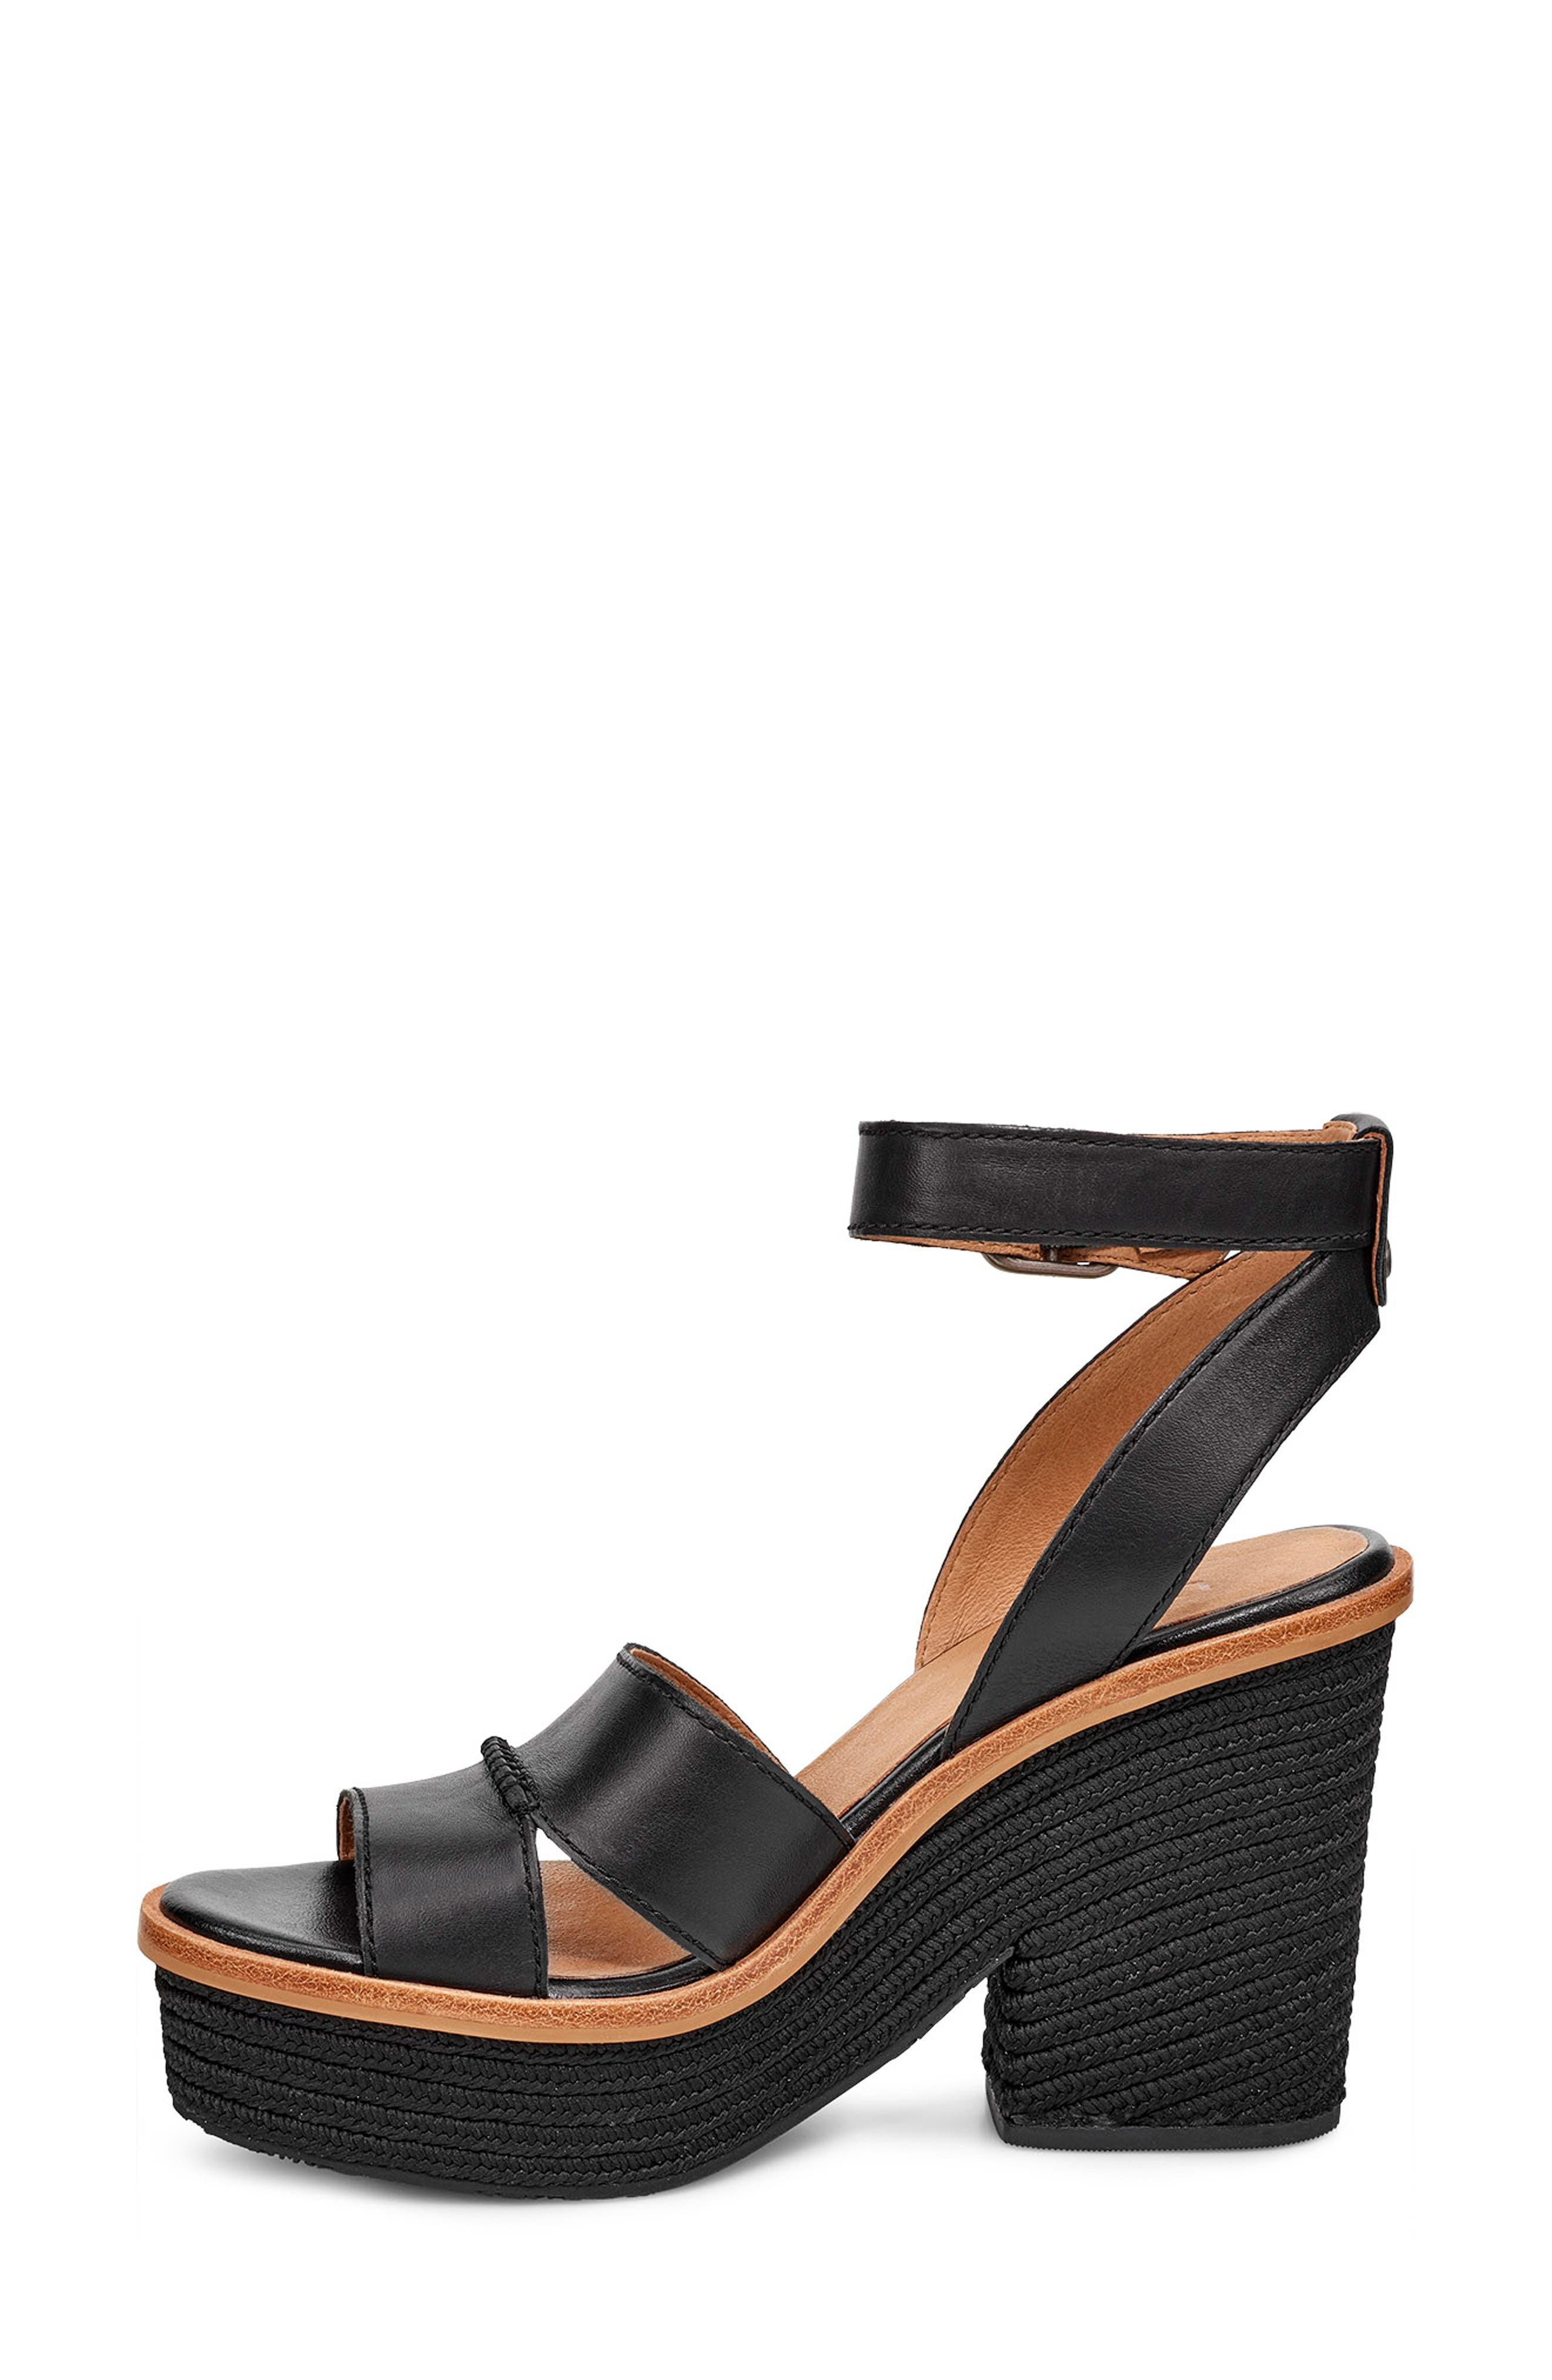 Carine Platform Sandal,                             Alternate thumbnail 6, color,                             BLACK LEATHER